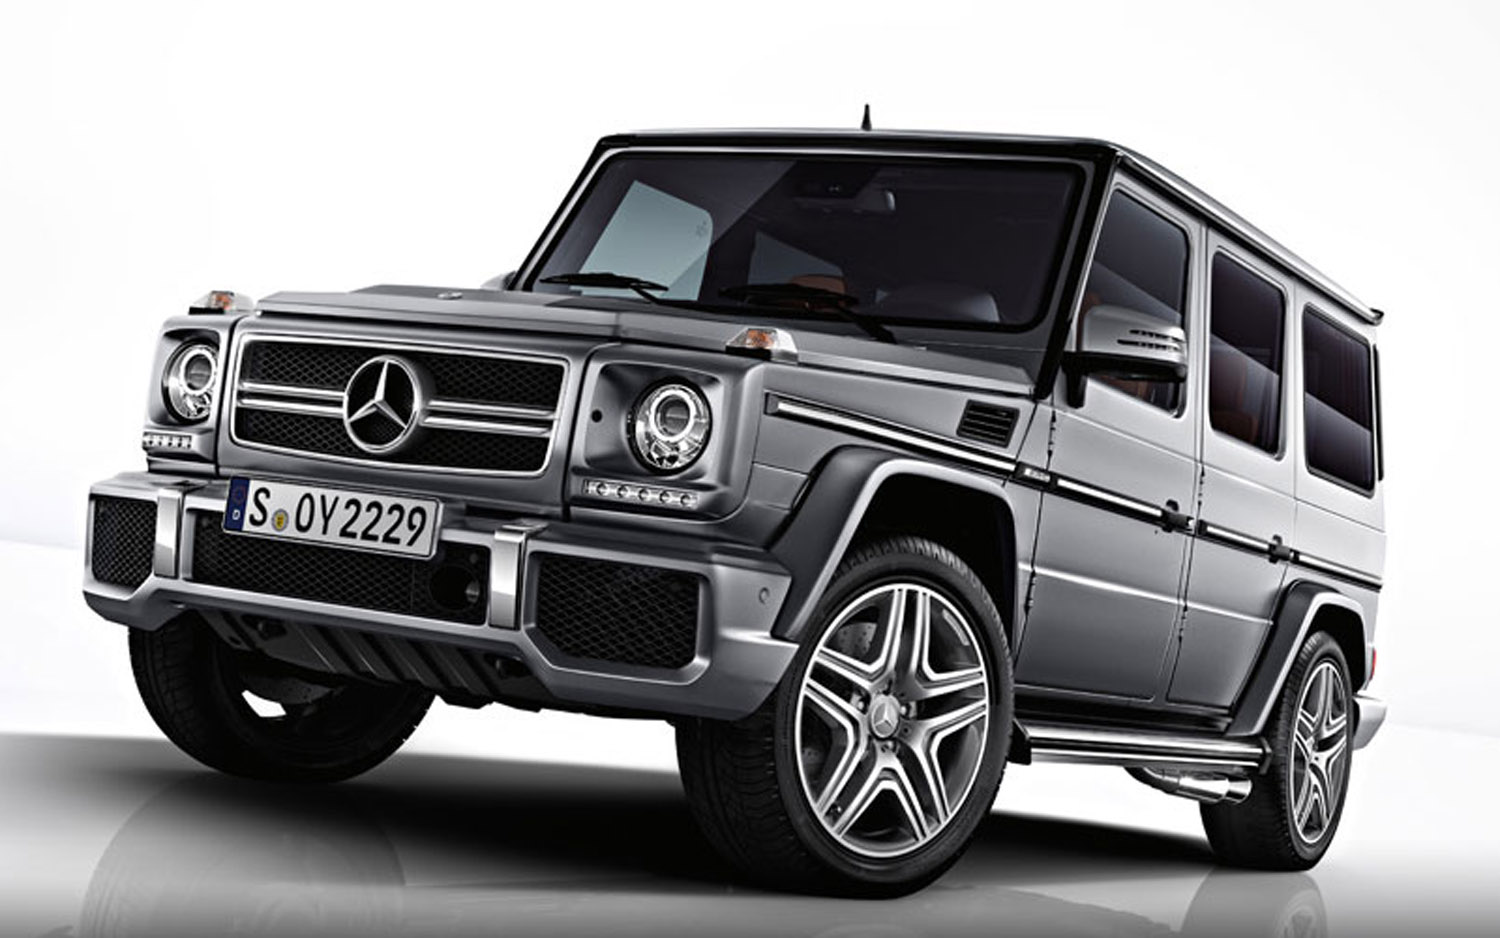 Captivating Confirmed: 2013 Mercedes Benz G65 AMG Not U.S. Bound, Will Cost Over  $500,000 Overseas